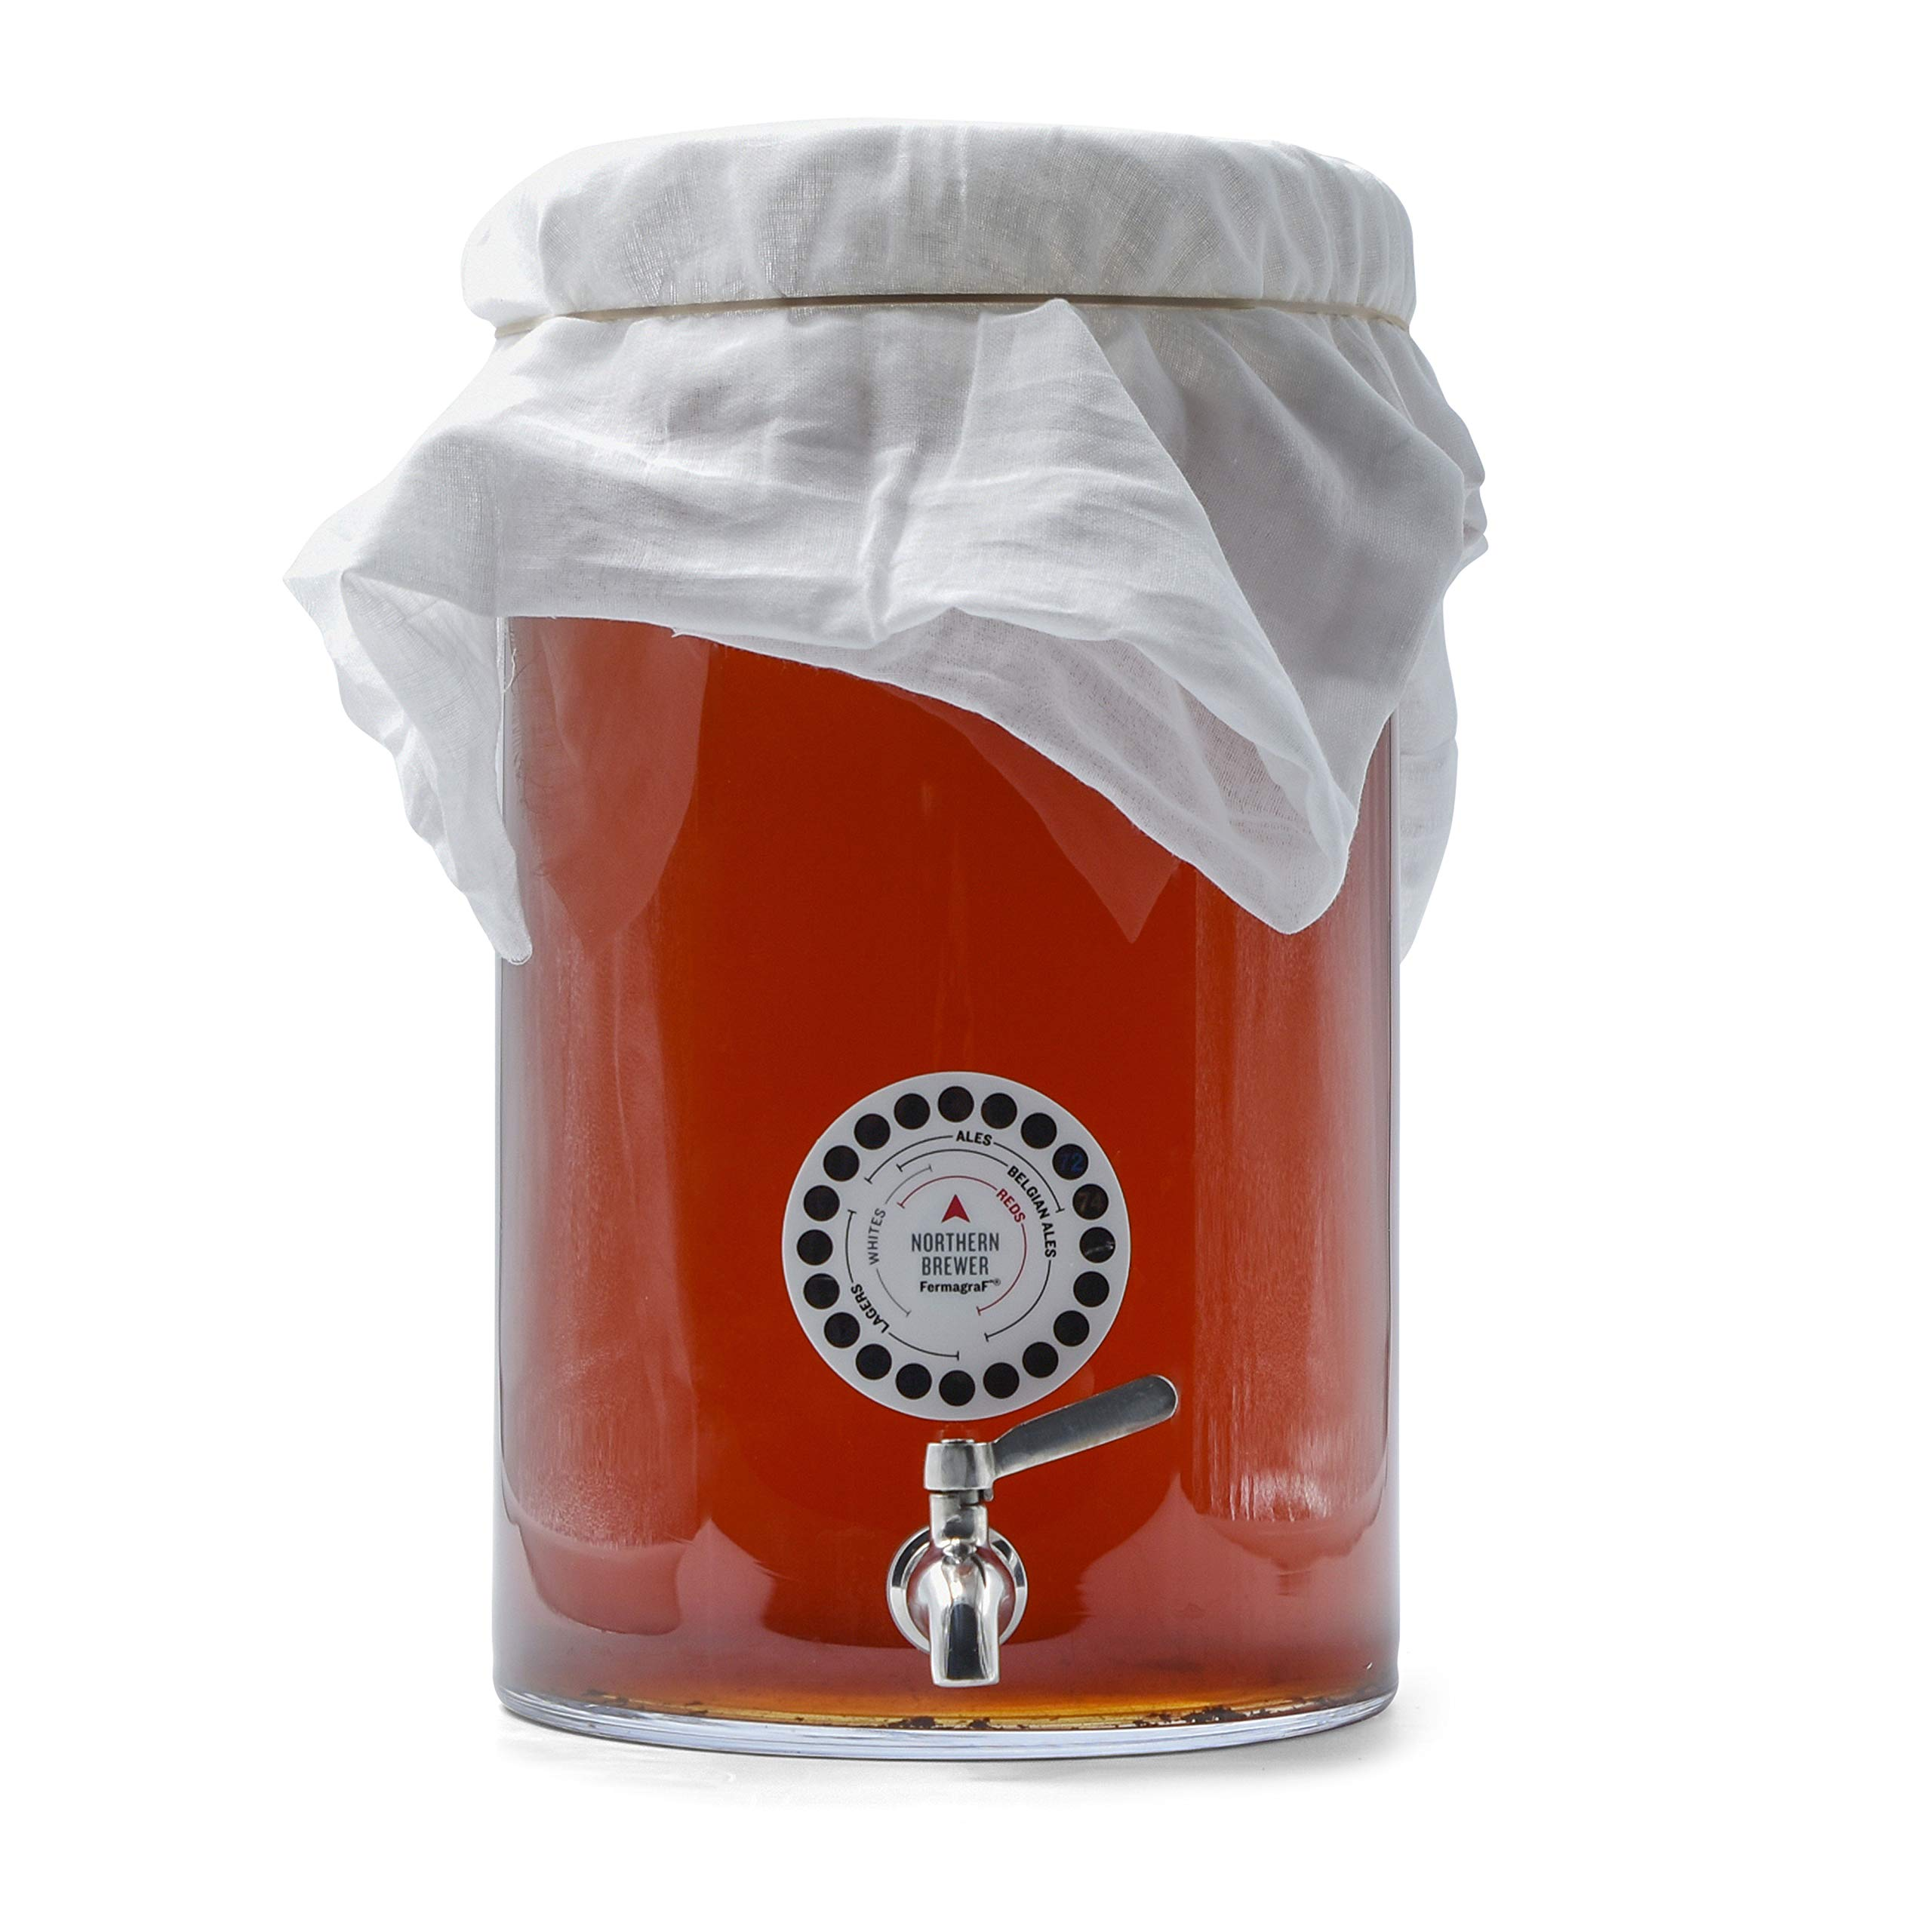 Northern Brewer - Kombucha Brewing Starter Kit With Scoby Included (3 Gallon Glass with Stainless Spigot) by Northern Brewer (Image #8)